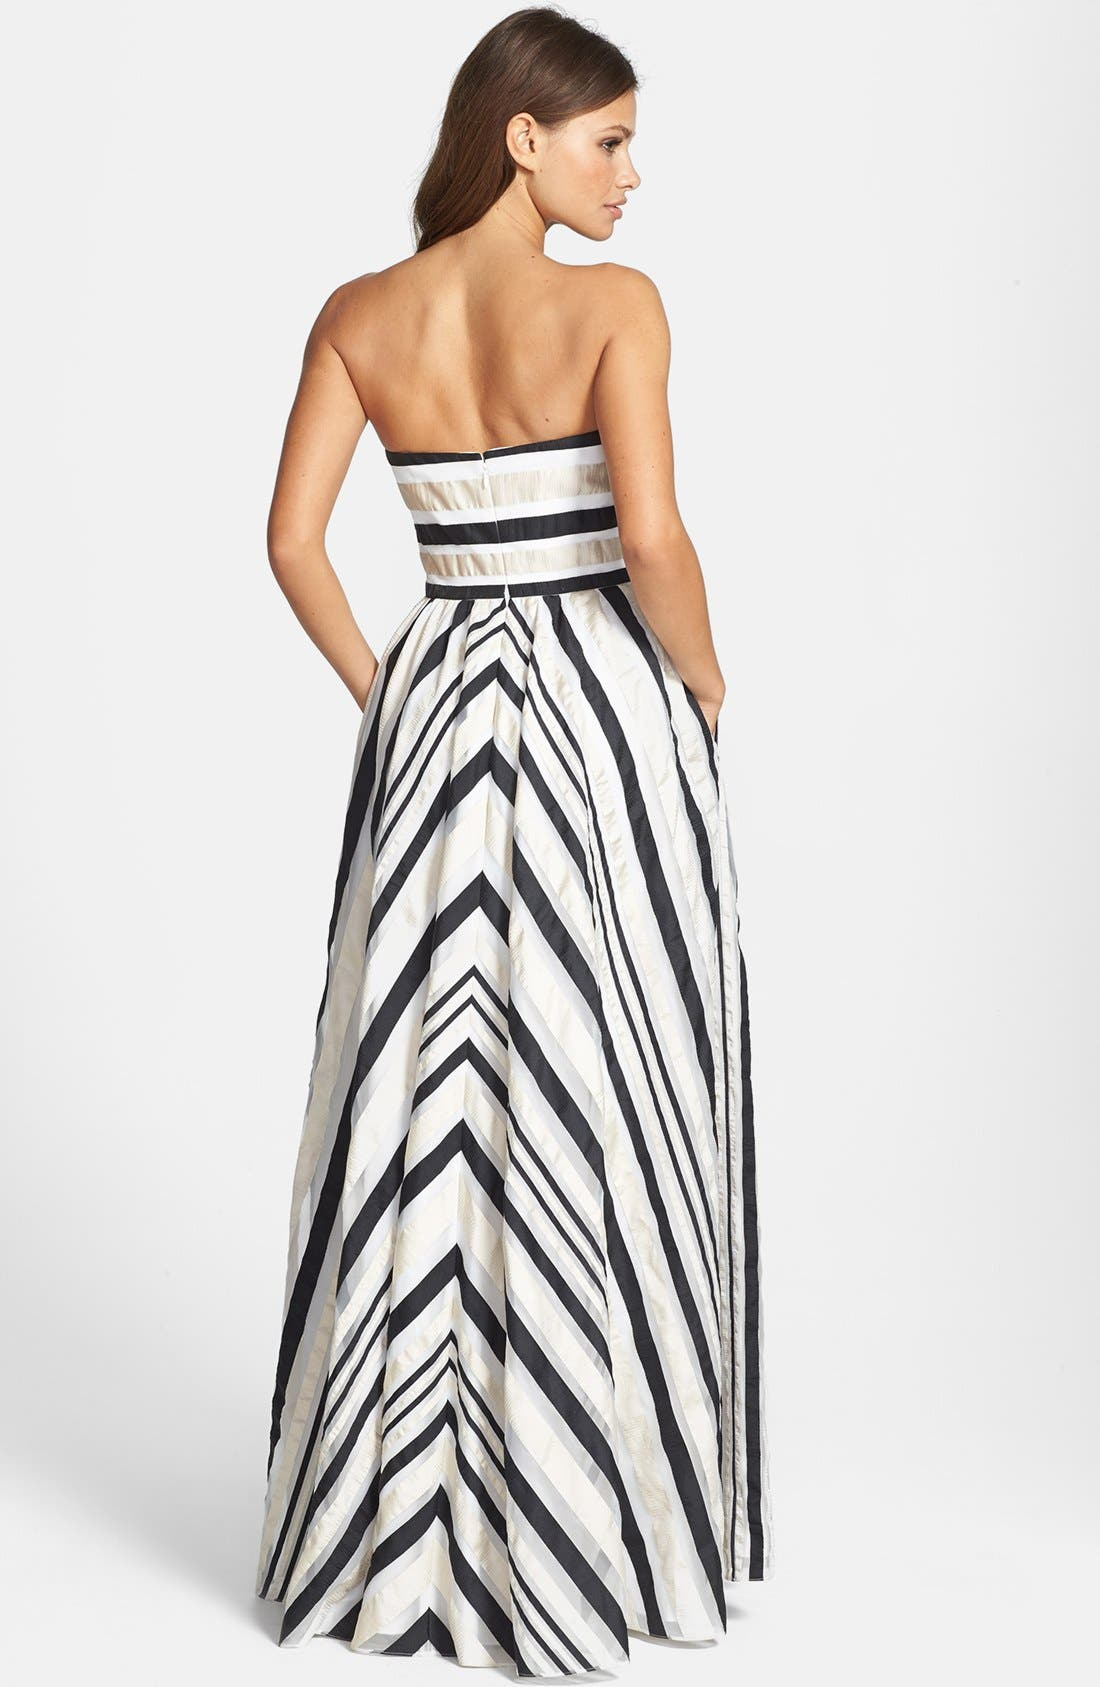 ADRIANNA PAPELL, Ribbon Stripe Strapless Dress, Alternate thumbnail 2, color, 001